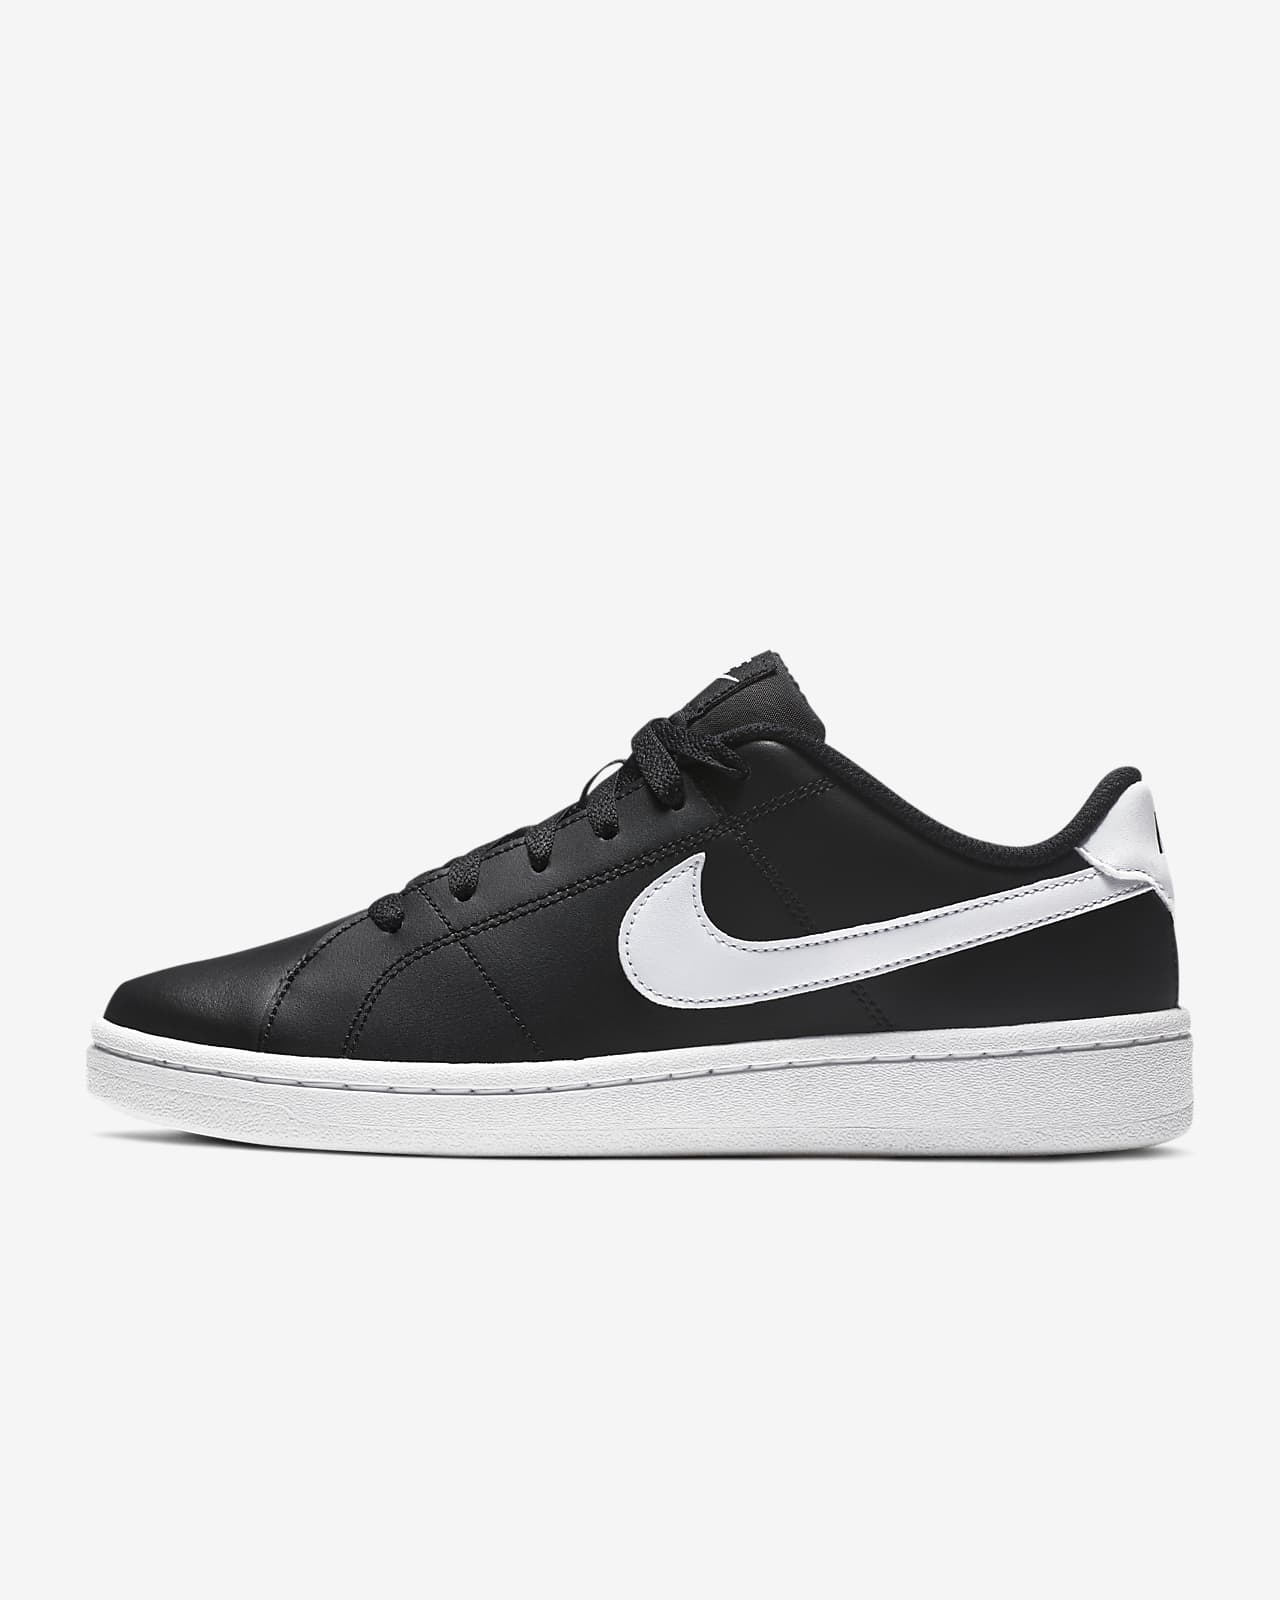 NikeCourt Royale 2 Women's Shoe